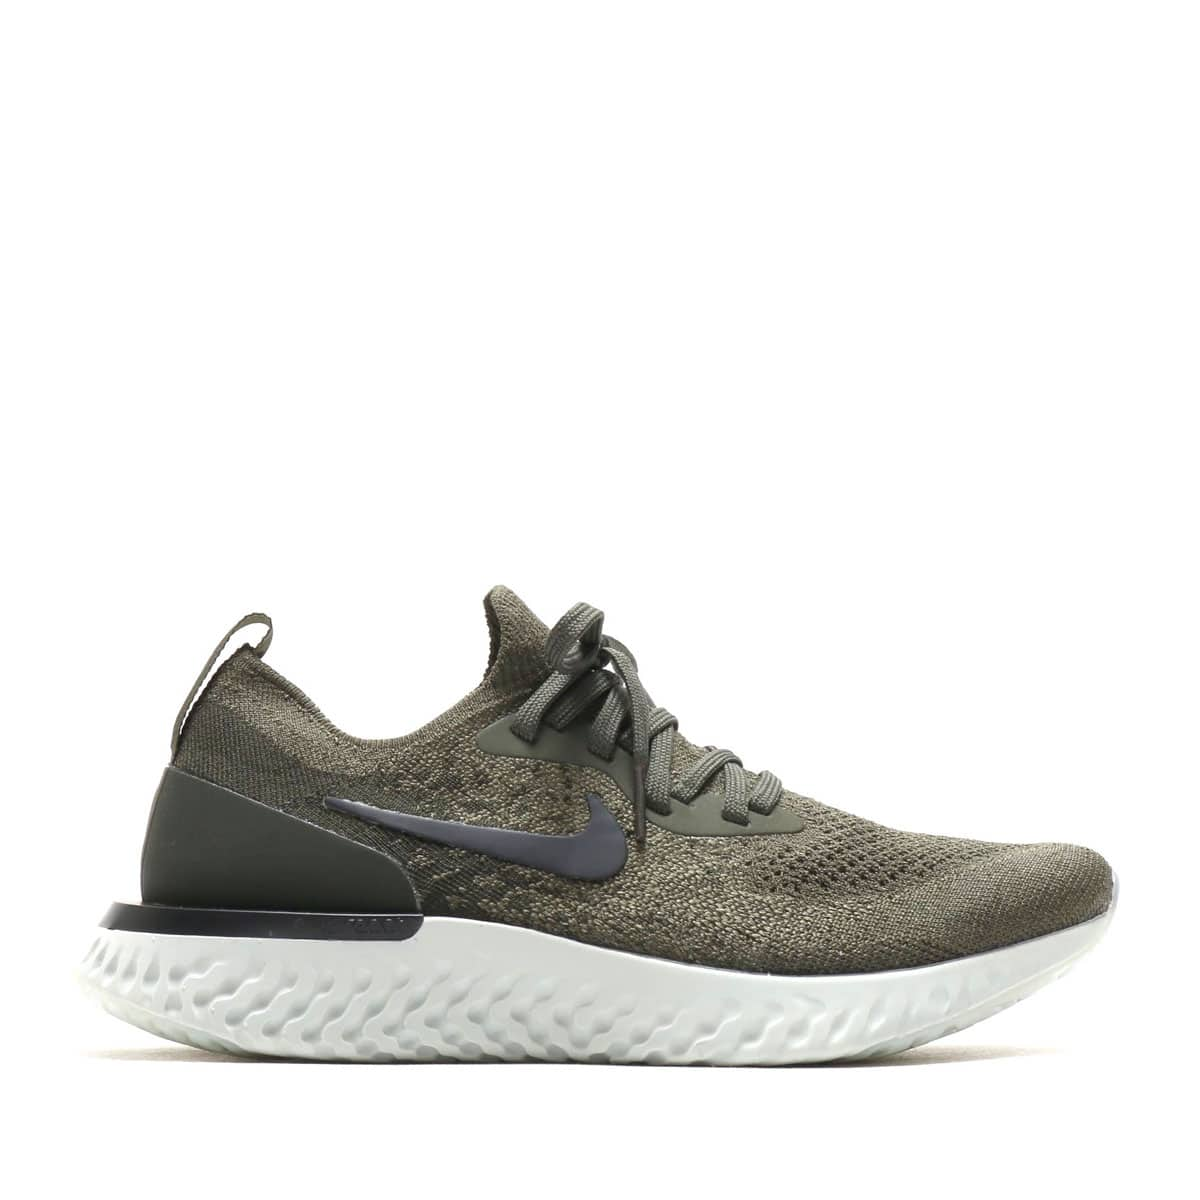 840533b316de NIKE WMNS EPIC REACT FLYKNIT CARGO KHAKI BLACK-SEQUOIA-LIGHT SILVER